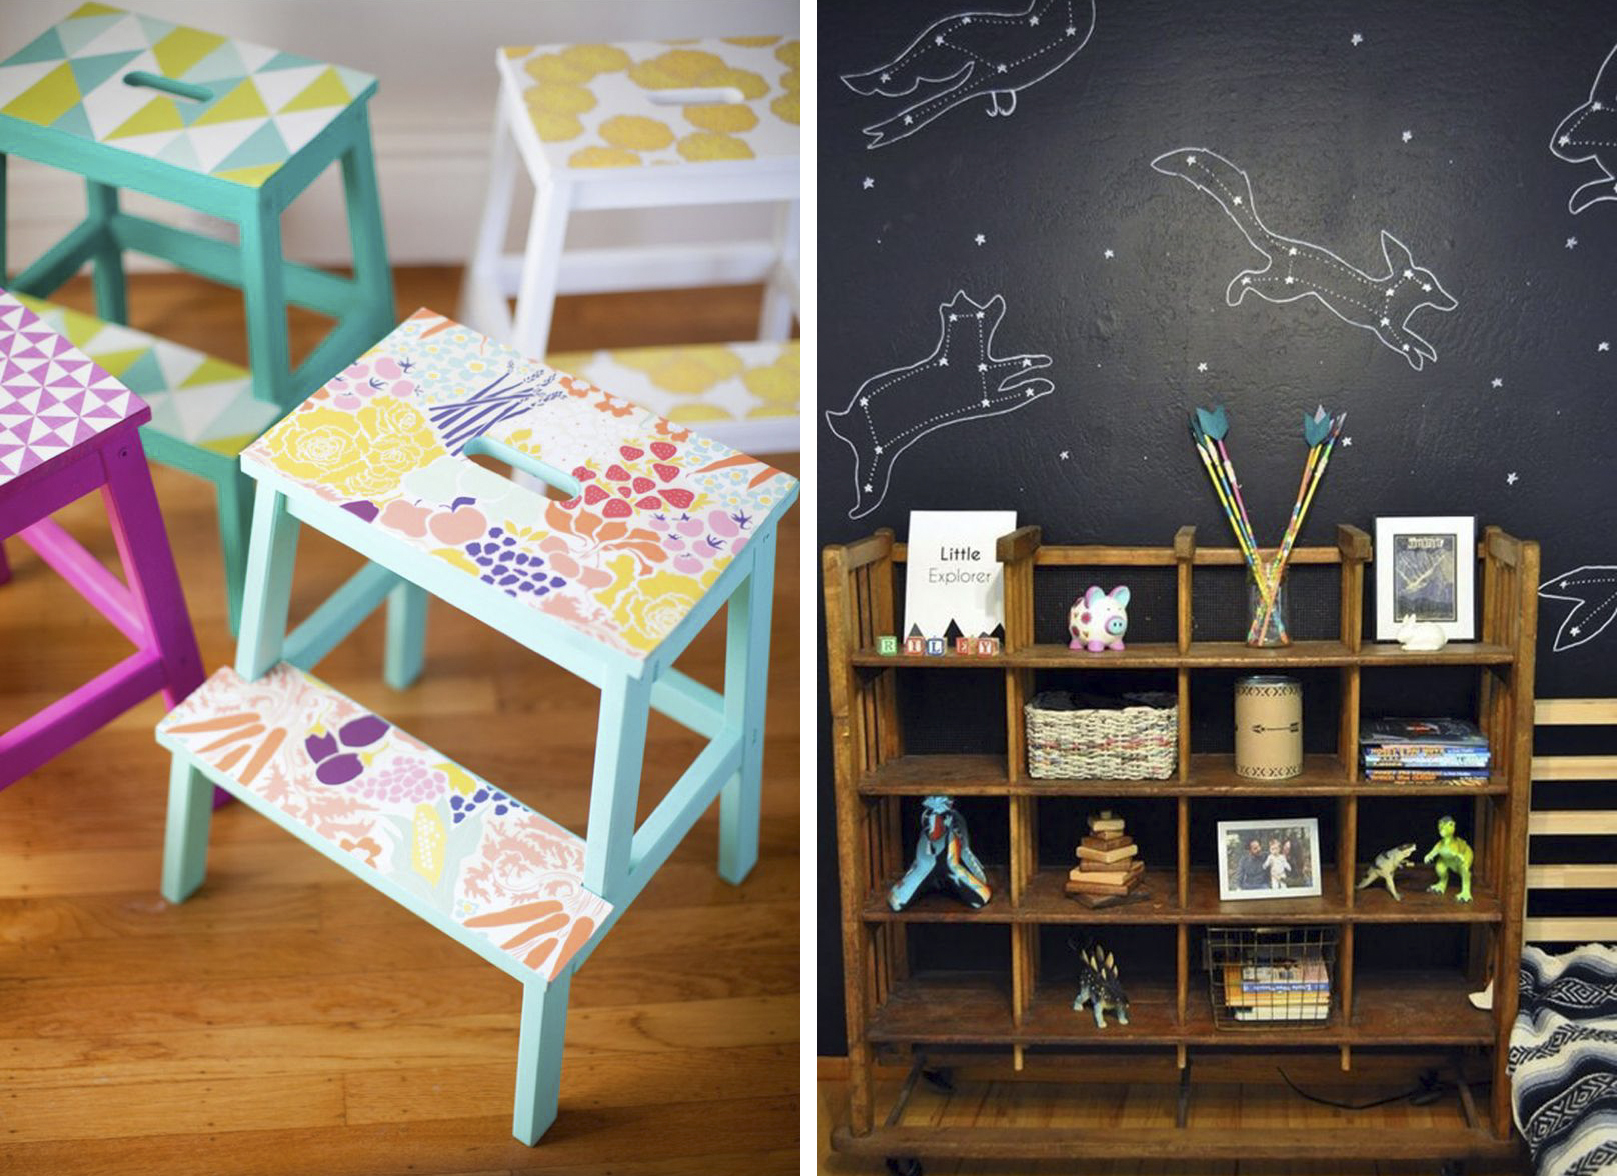 Kids Custom Step Stools and Constellation Wall